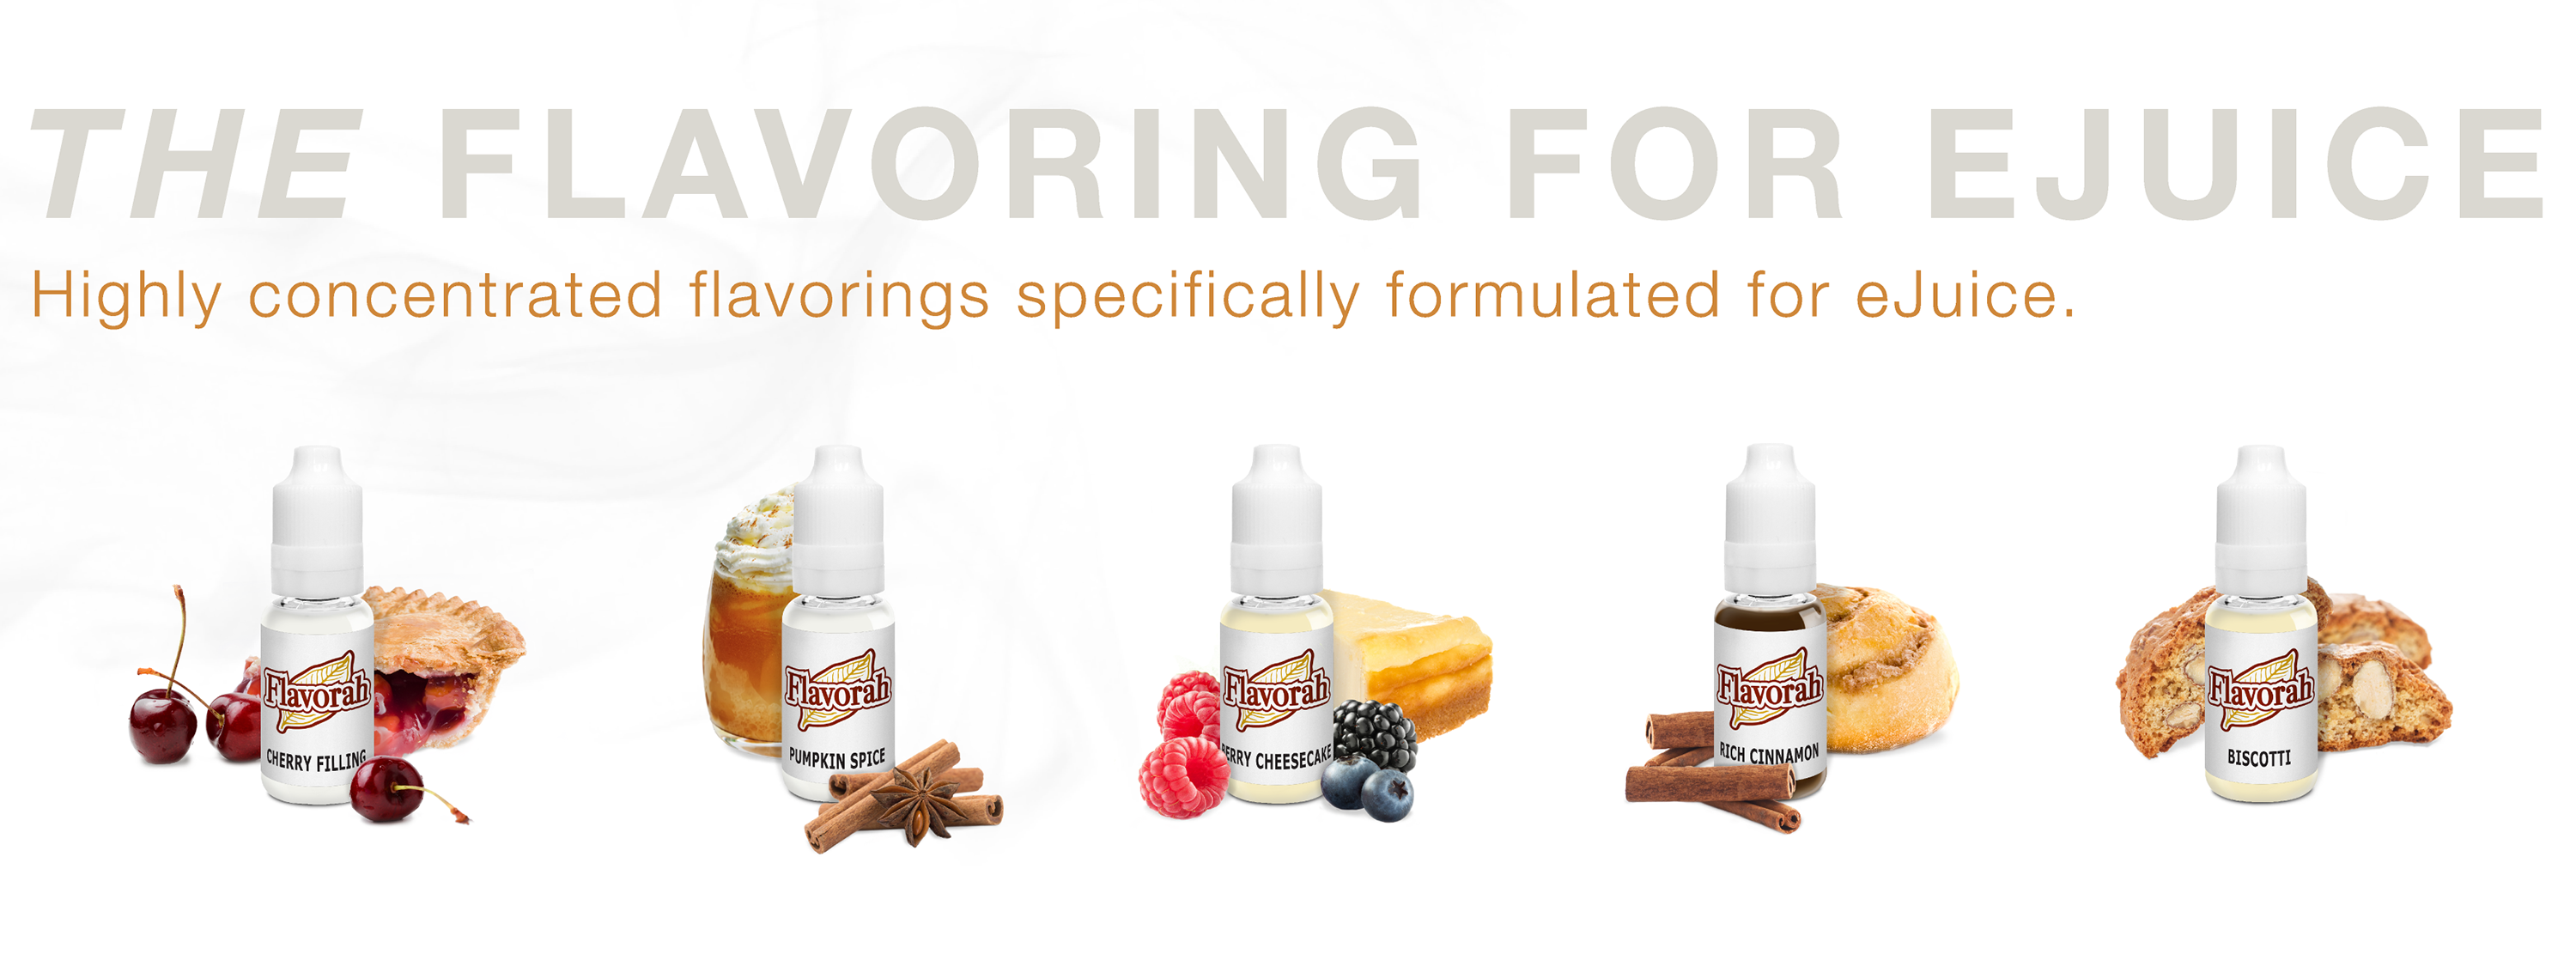 Flavorah - The Flavoring for eJuice - Dessert Flavors - Highly concentrated flavorings specifically formulated for eJuice